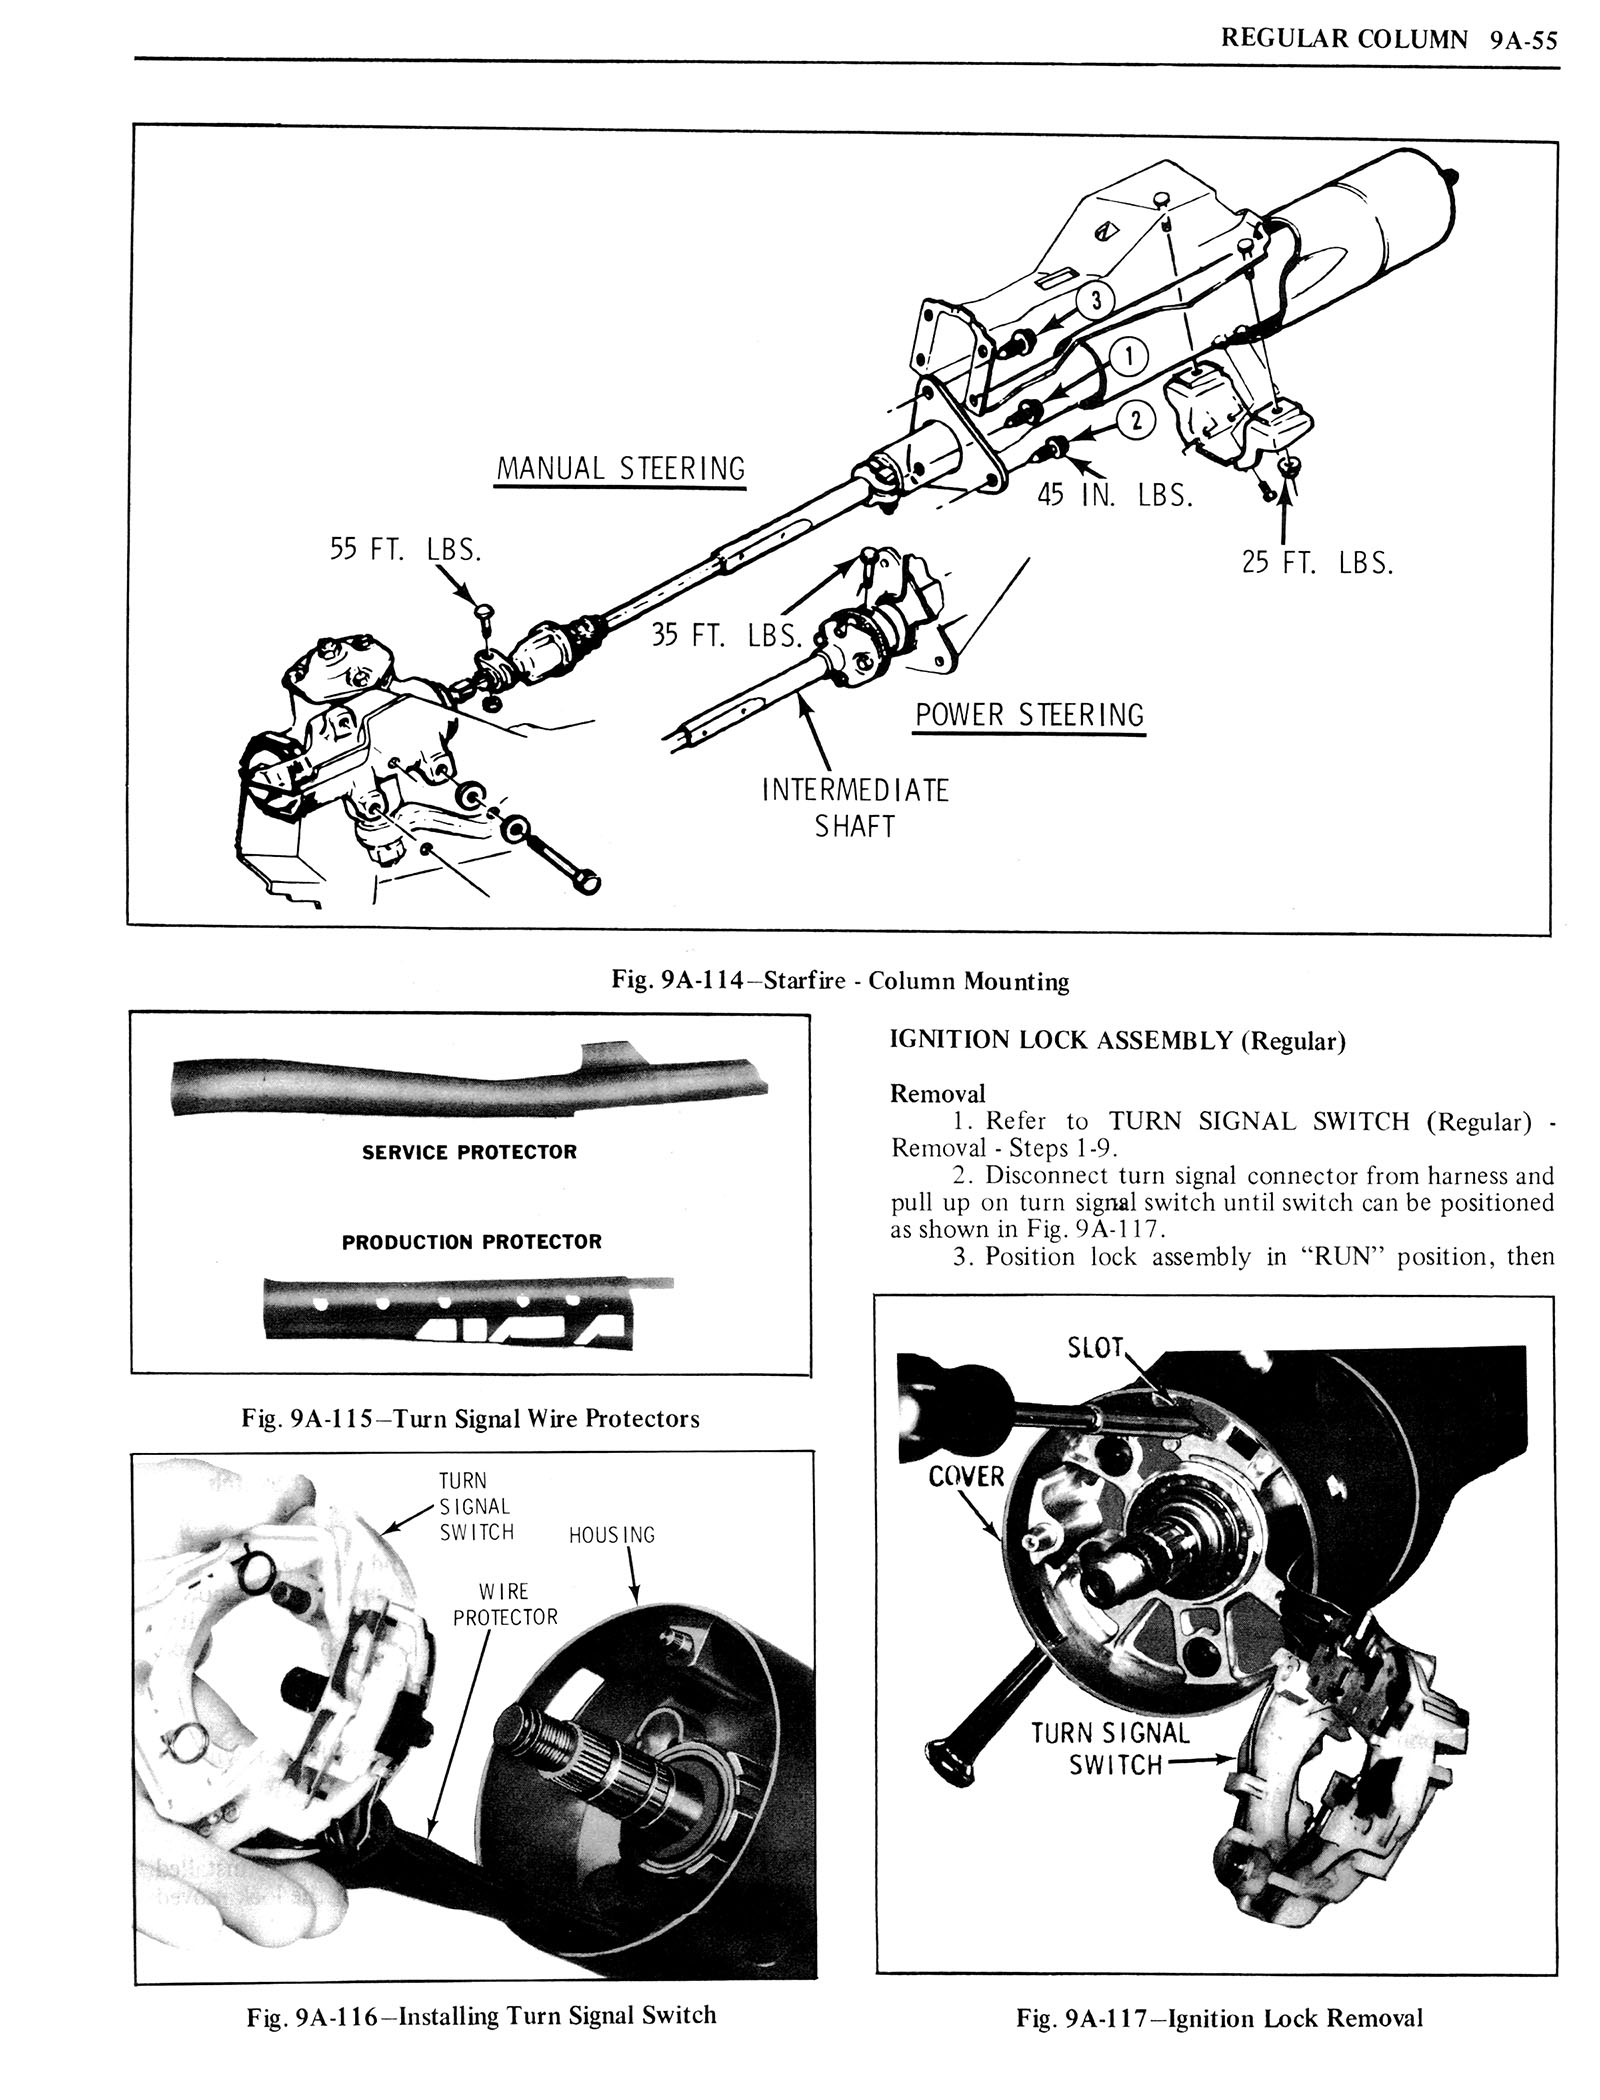 1976 Oldsmobile Service Manual page 1063 of 1390